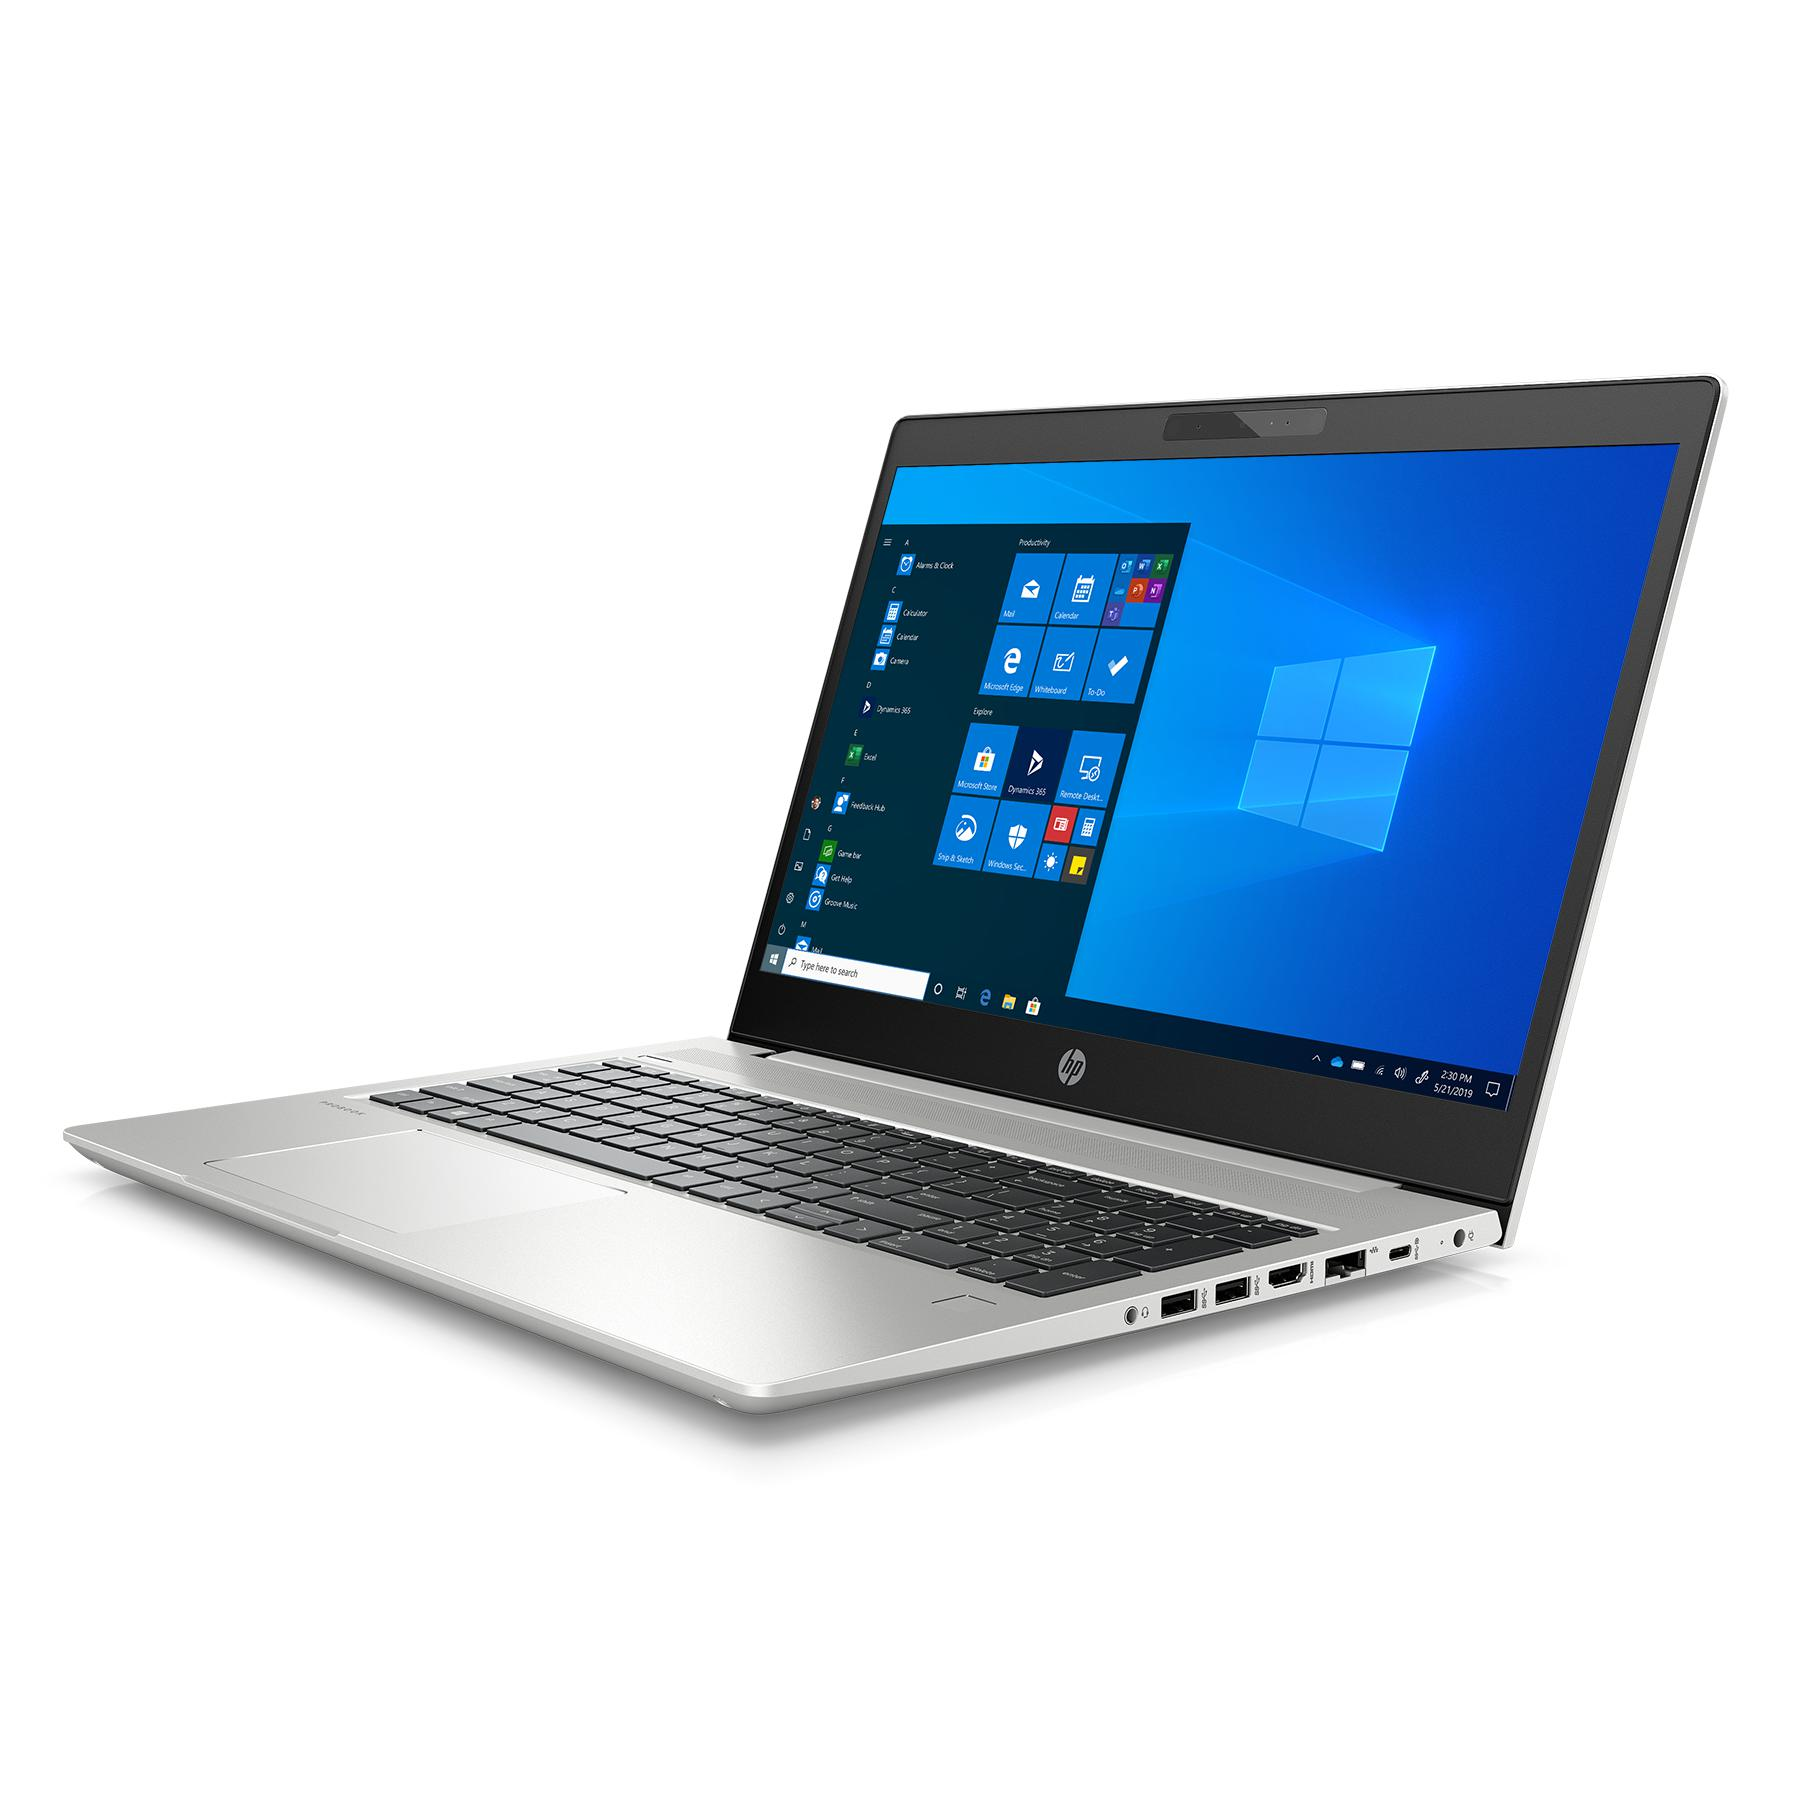 Hewlett Packard (HP) ProBook 455R G6 6UK72ES 15,6 FHD IPS, AMD Ryzen 5 3500U, 8GB RAM, 256GB SSD, Windows 10 Pro